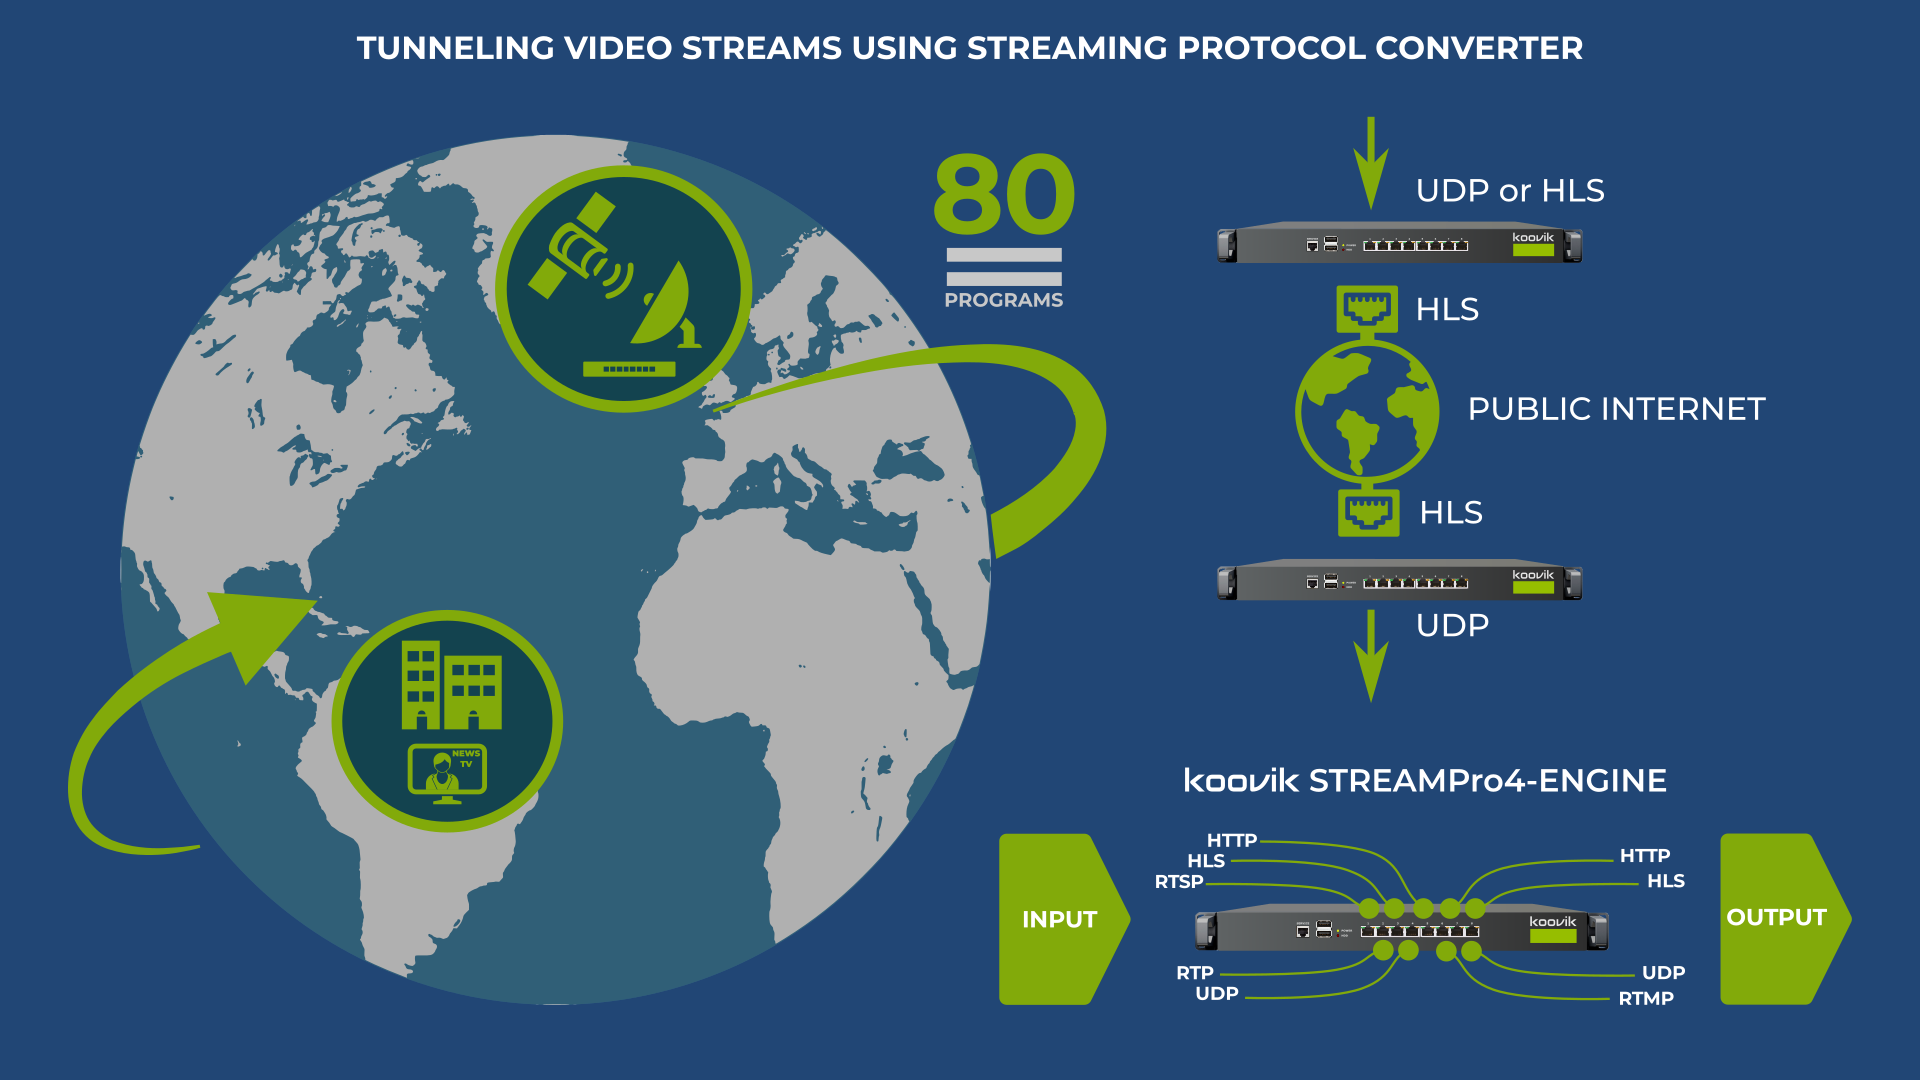 streampro4-engine TUNNELING VIDEO STREAMS USING STREAMING PROTOCOL CONVERTER